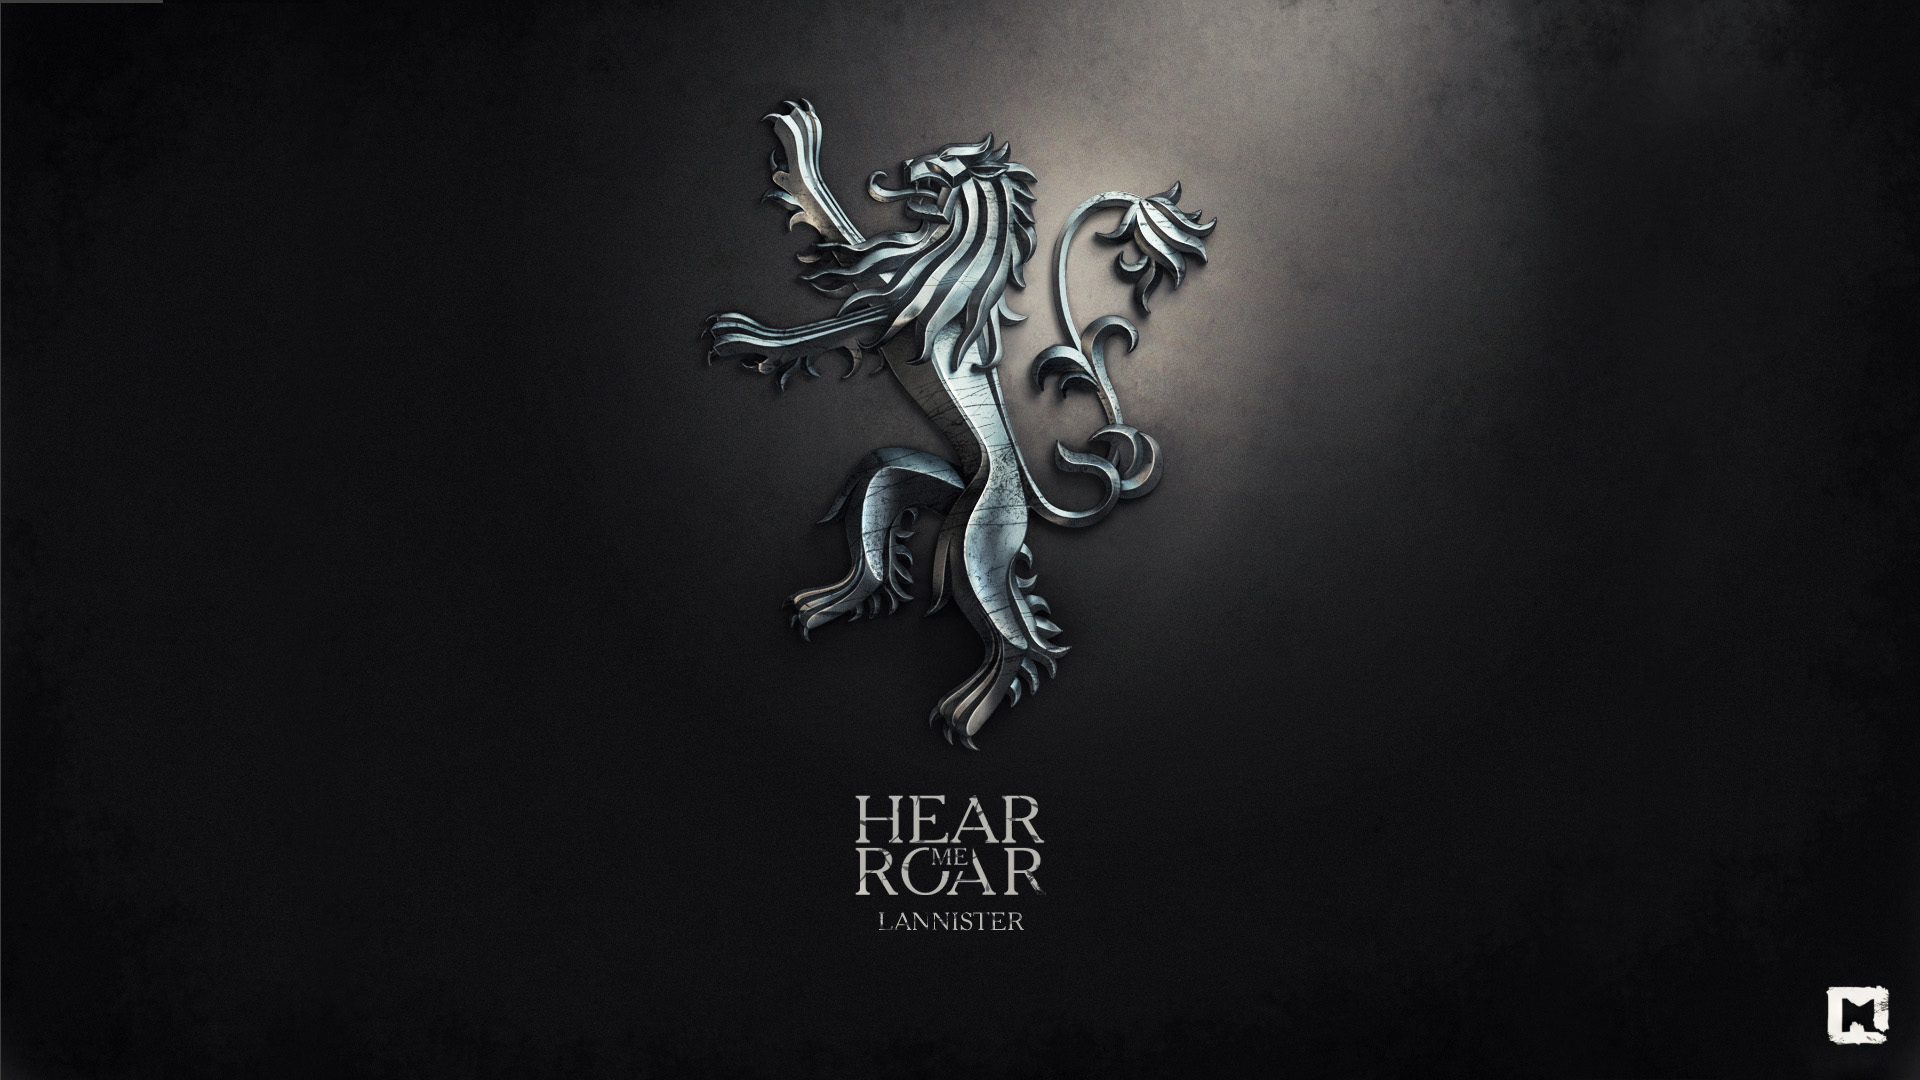 hear me roar lannister game of thrones background HD wallpaper 1920x1080